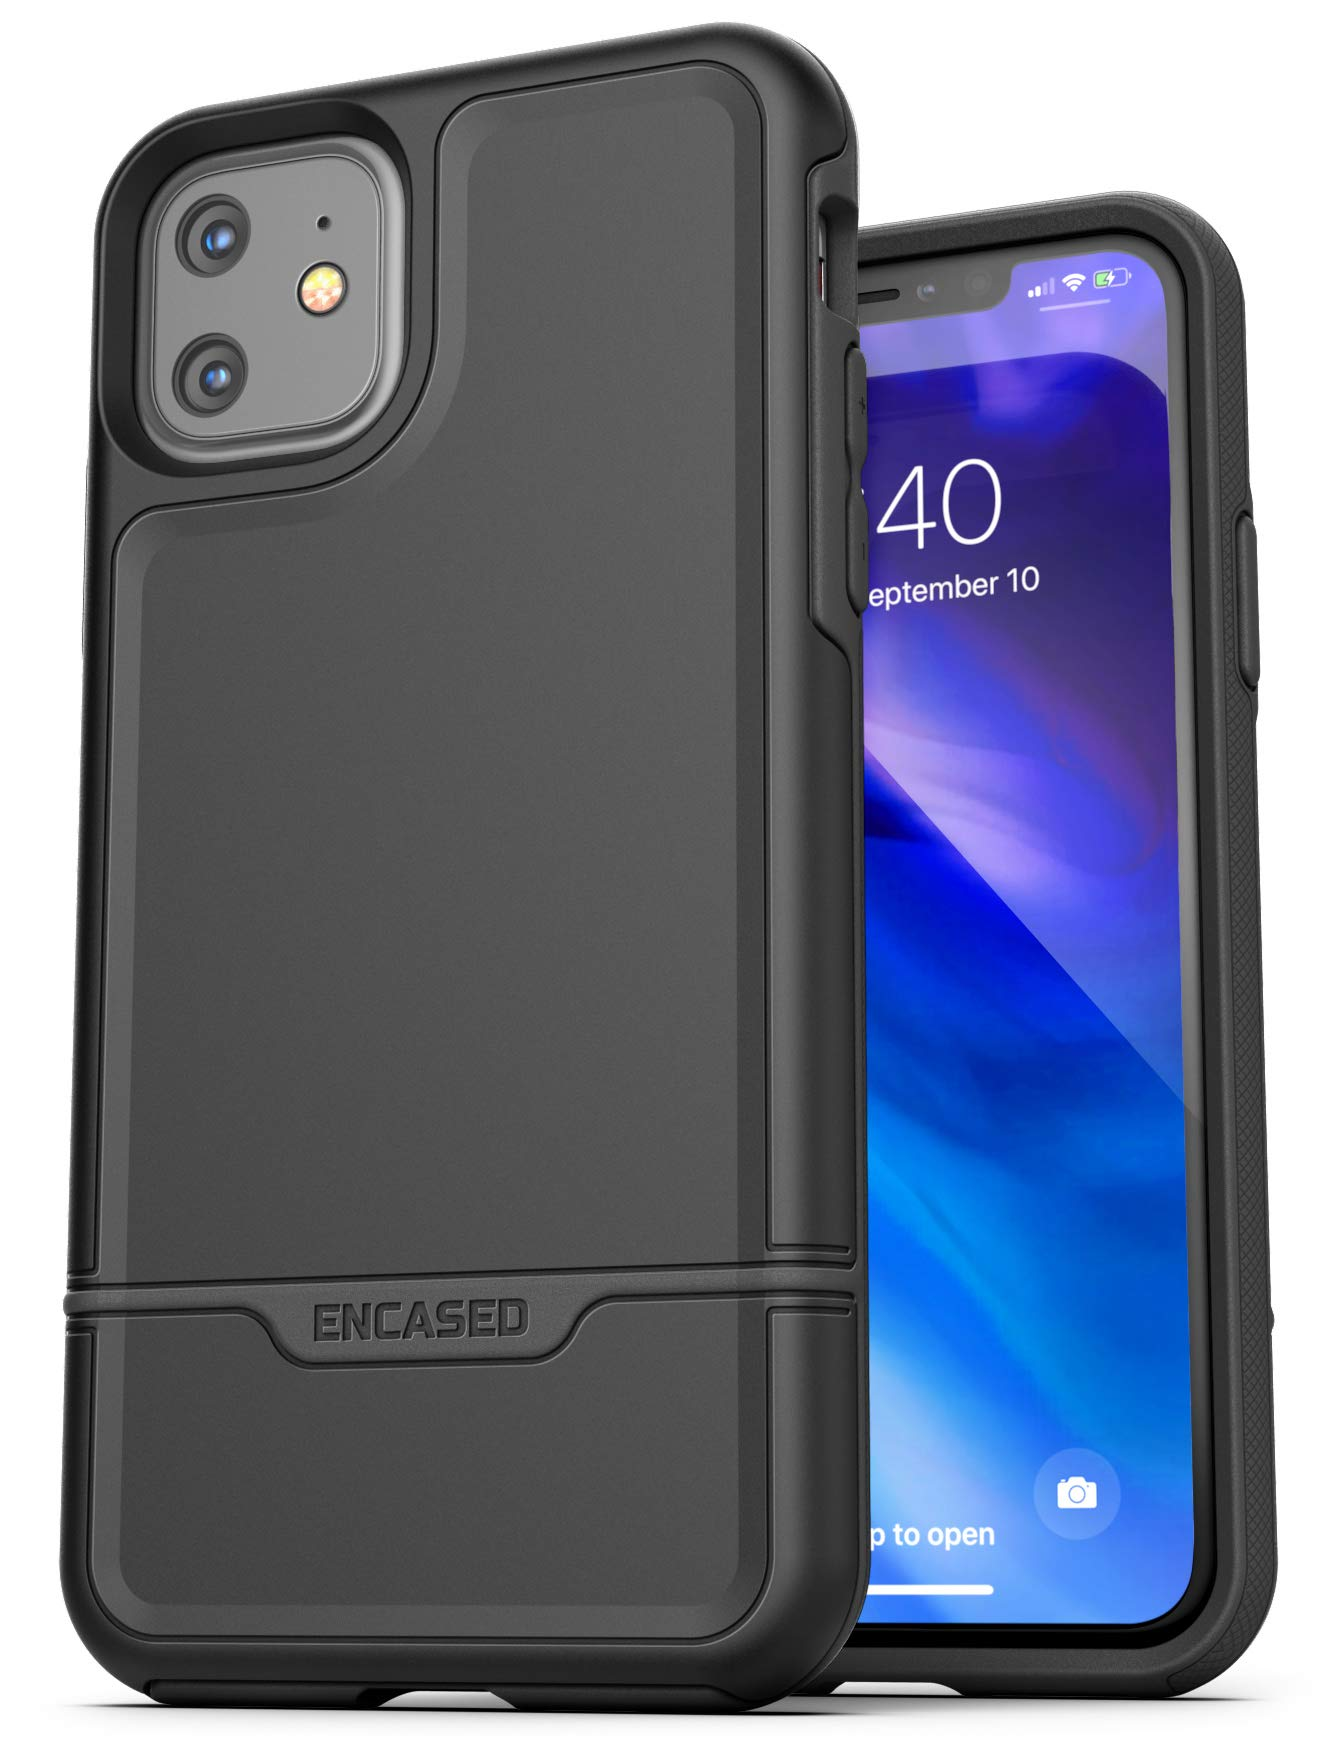 Encased Heavy Duty iPhone 11 Protective Case (2019 Rebel Armor) Military Grade Full Body Rugged Cover (Black)